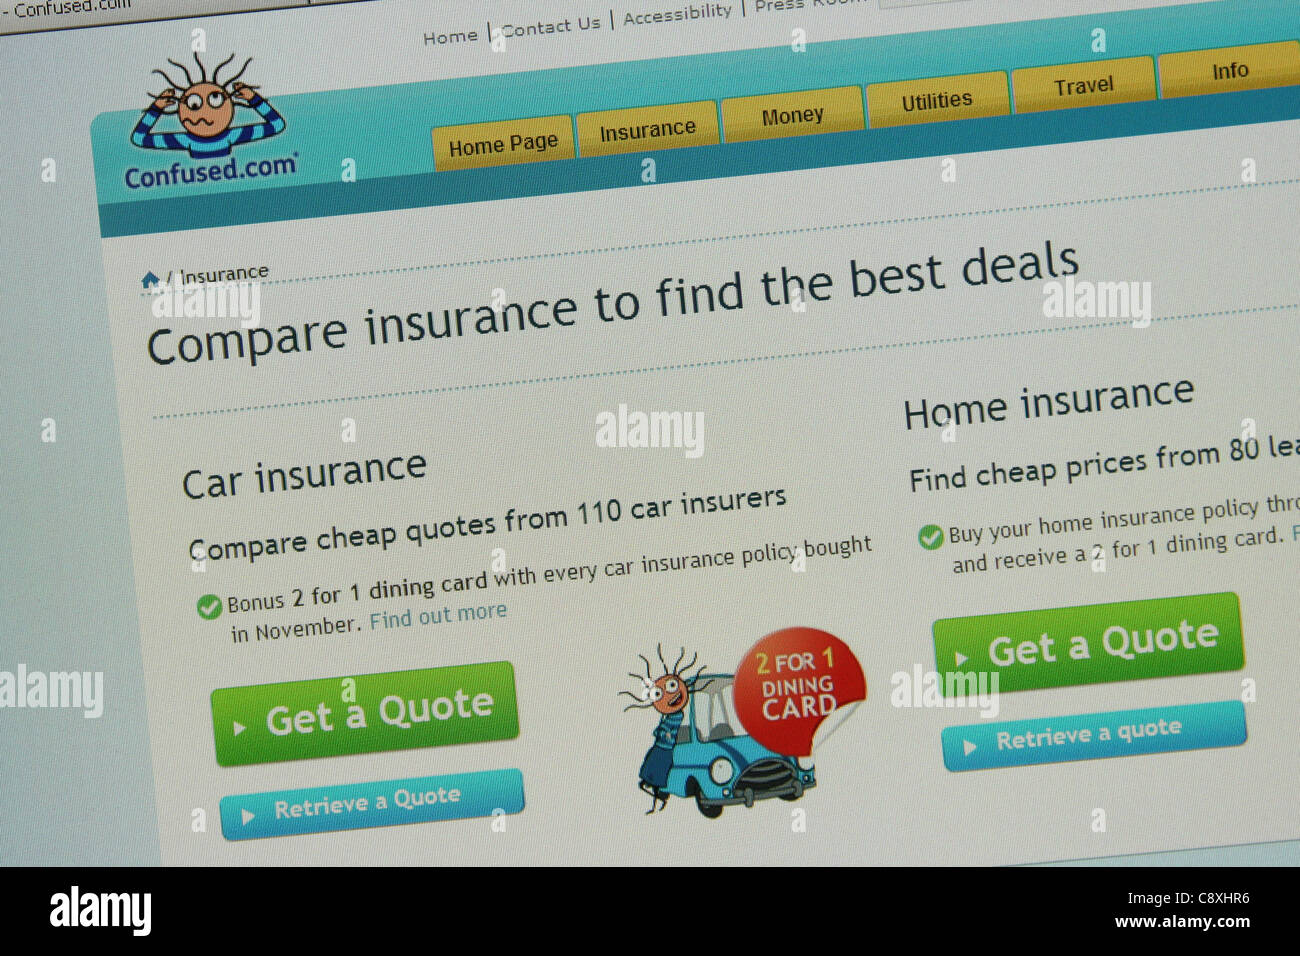 compare insurance online confused.com - Stock Image